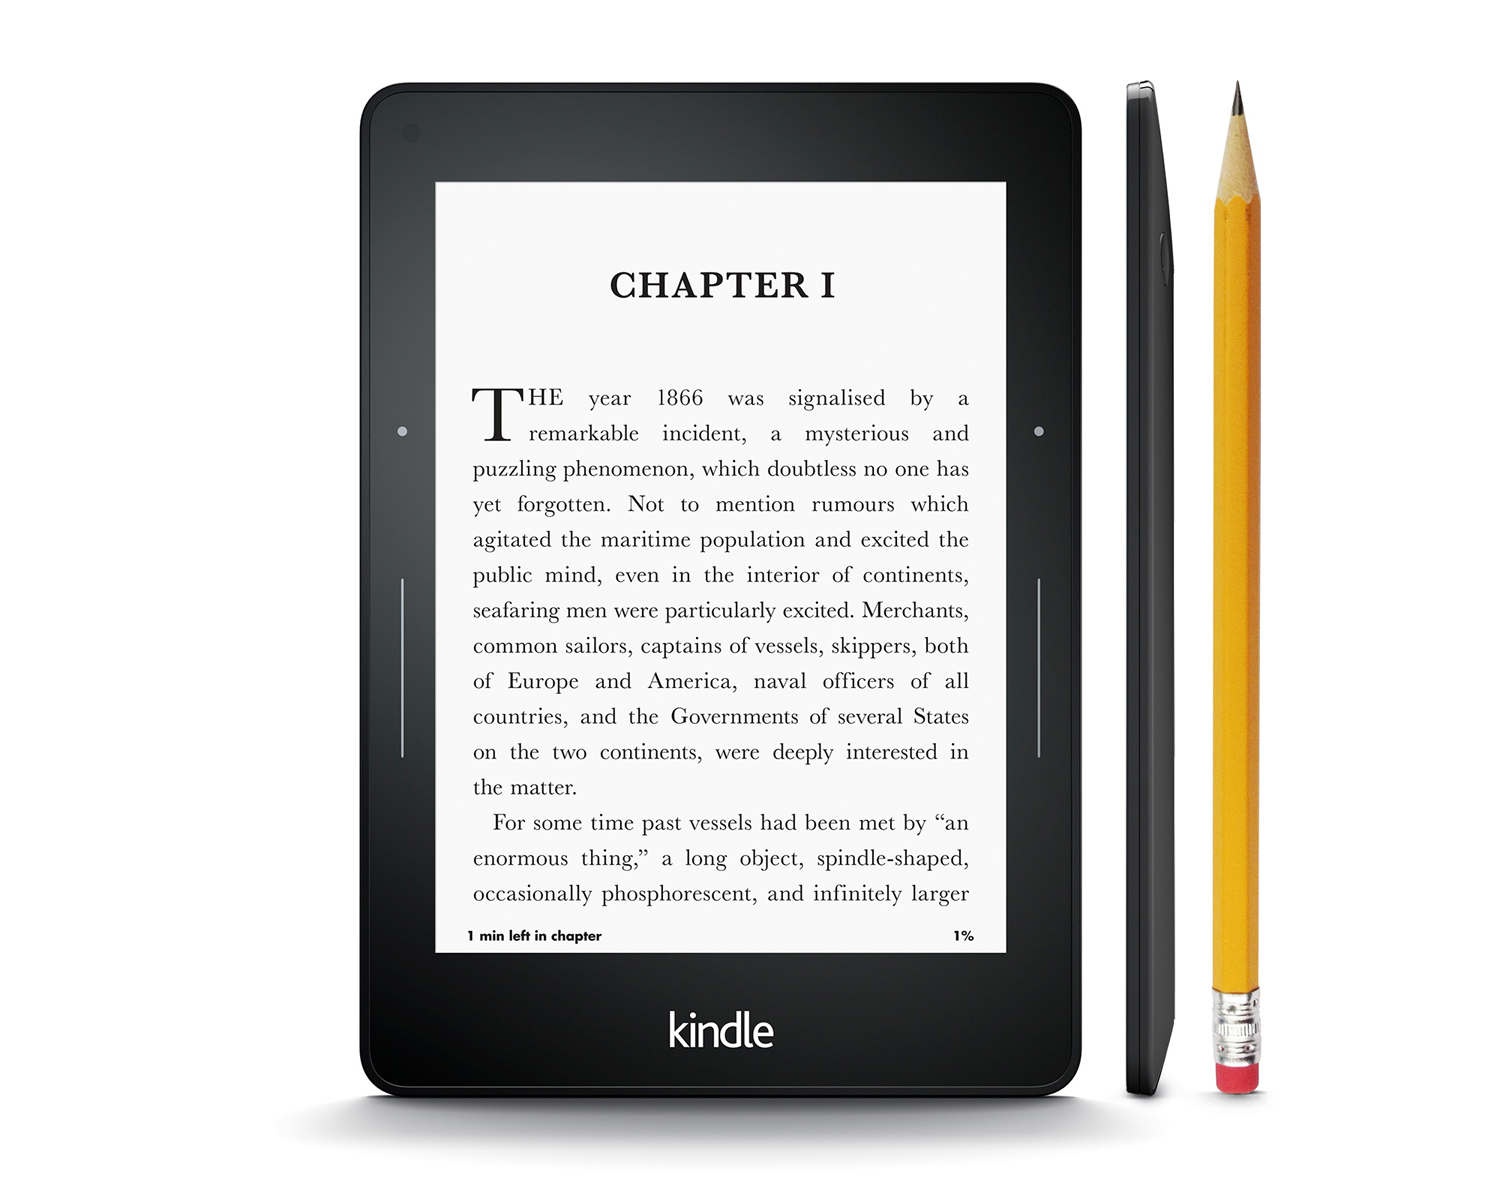 Amazon.com: Customer reviews: Kindle Voyage E-reader, 6 ...